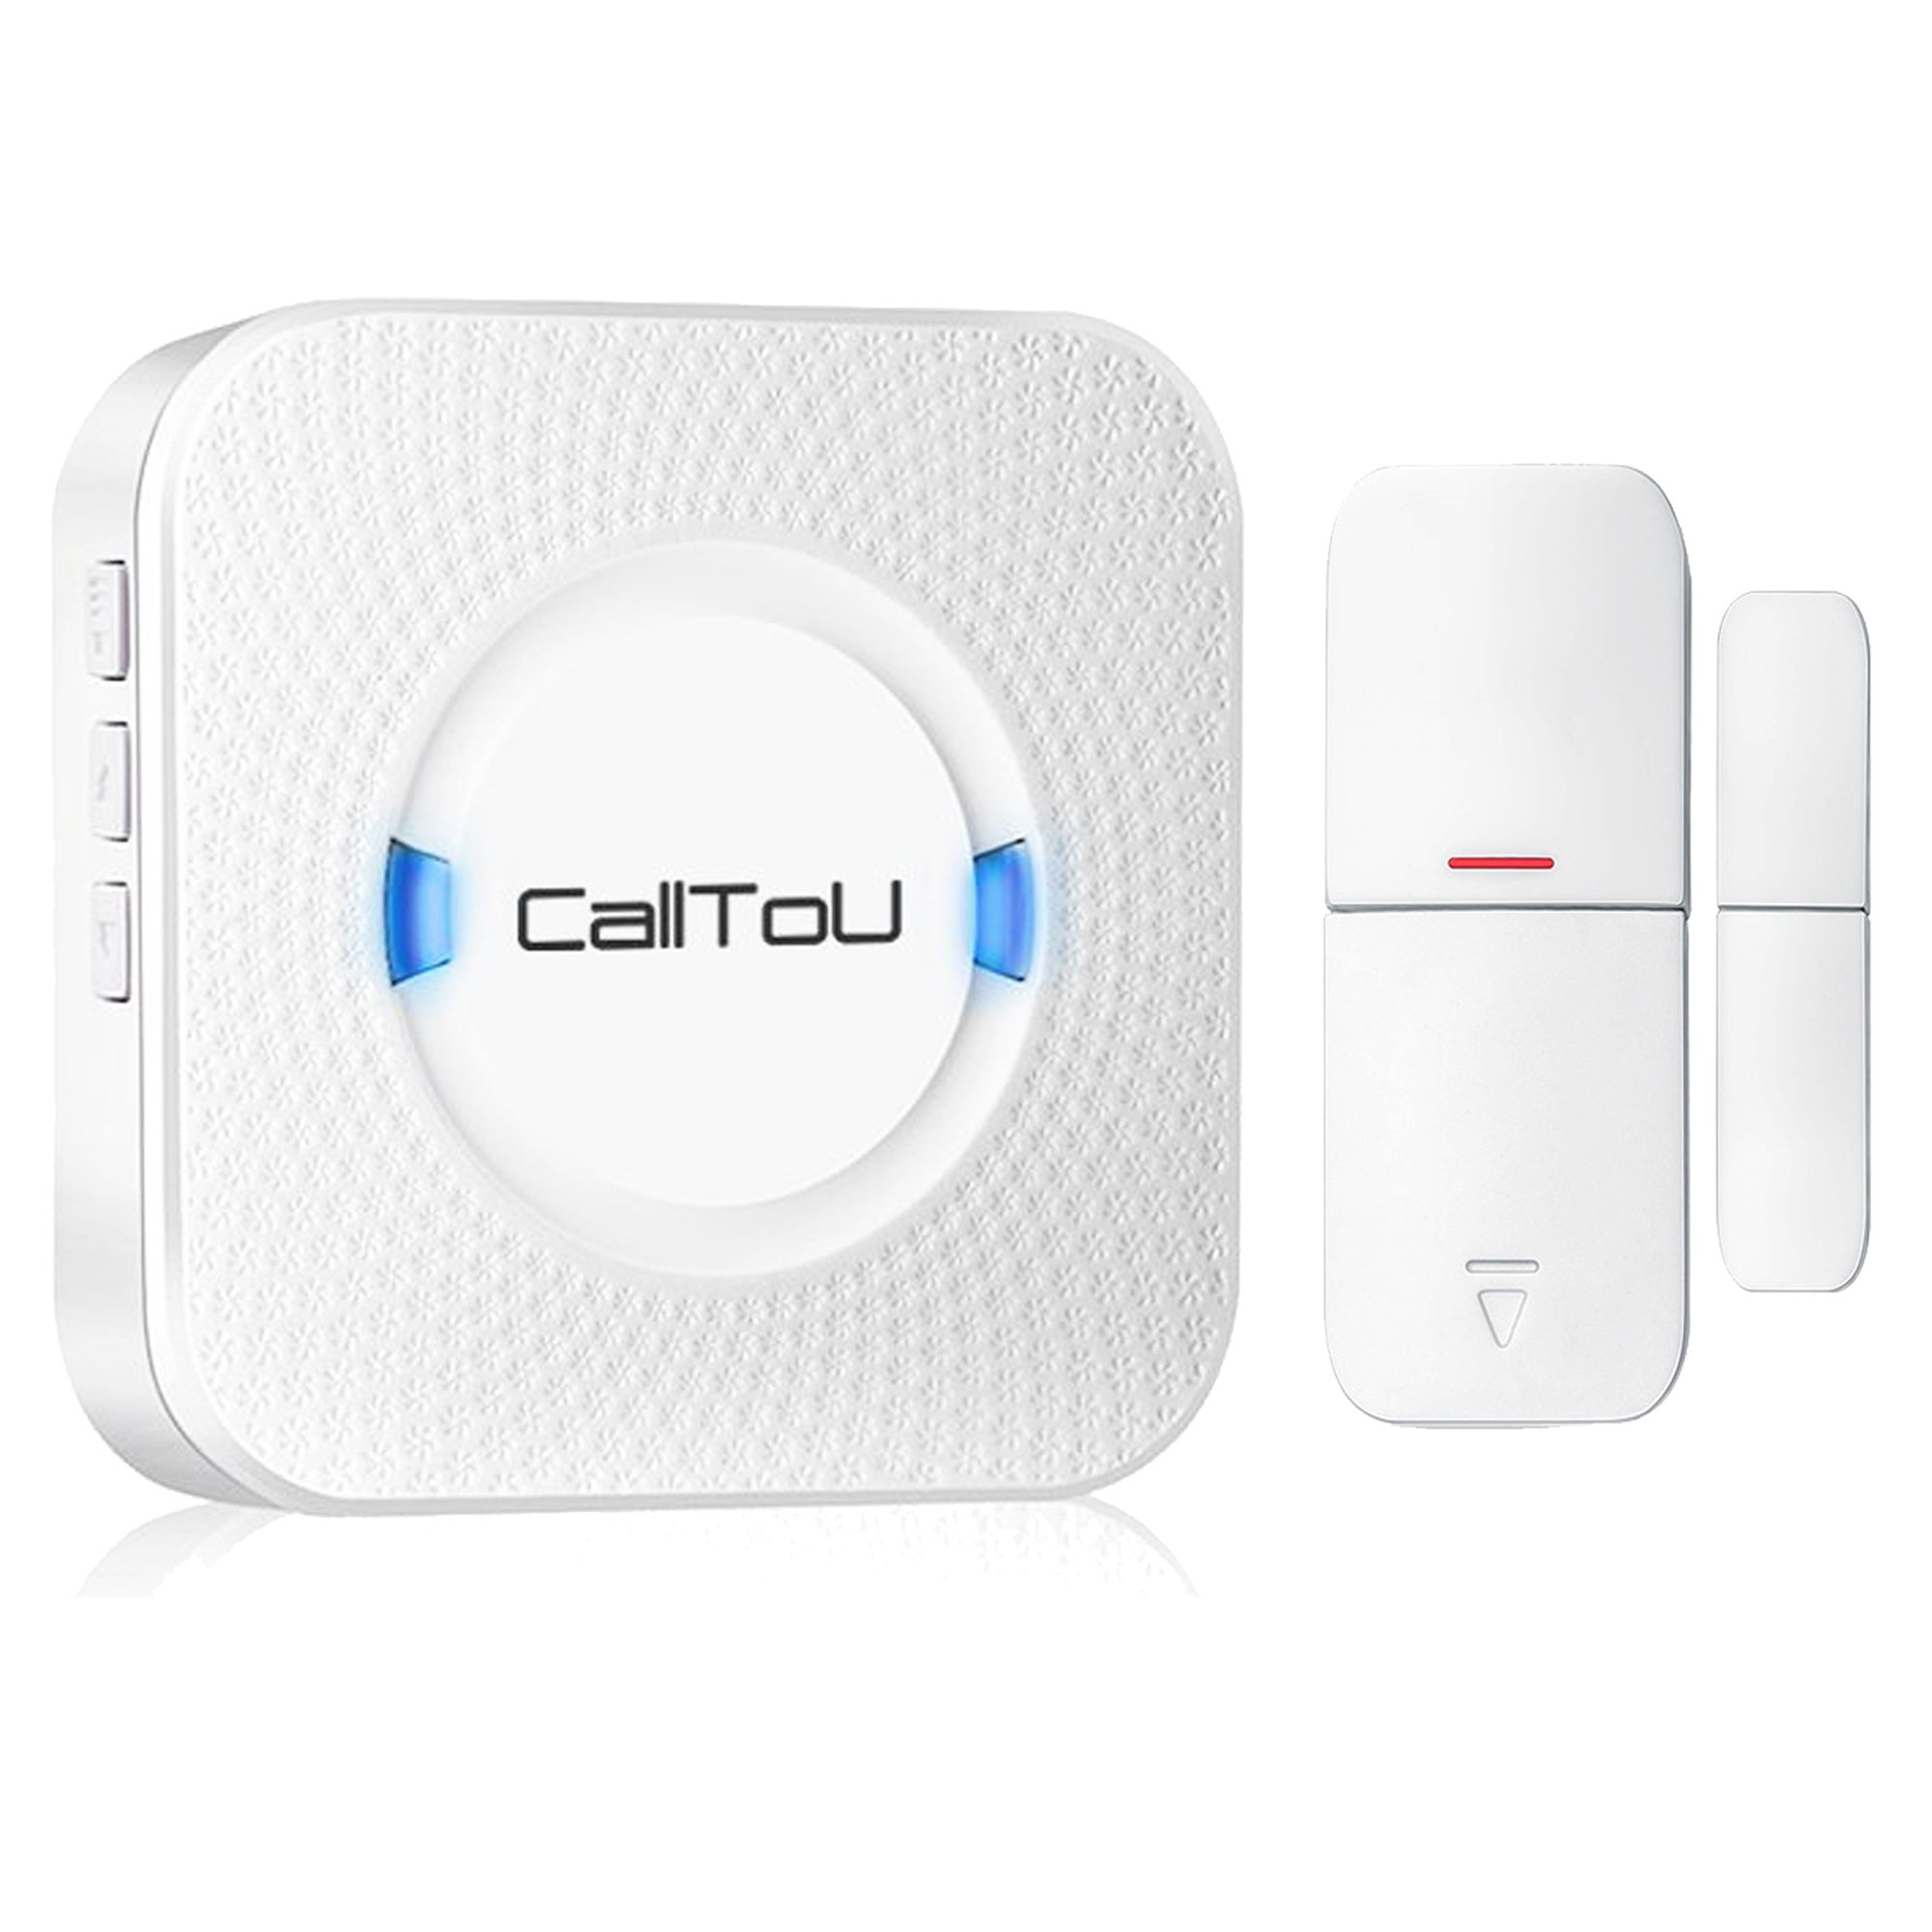 CallToU Wireless Door Open Chime Sensor Entrance Chime Entry Alert Alarm For Home Retail Store Business shop Apartment Office 1 Magnet Door/Window sensor 1 Receiver